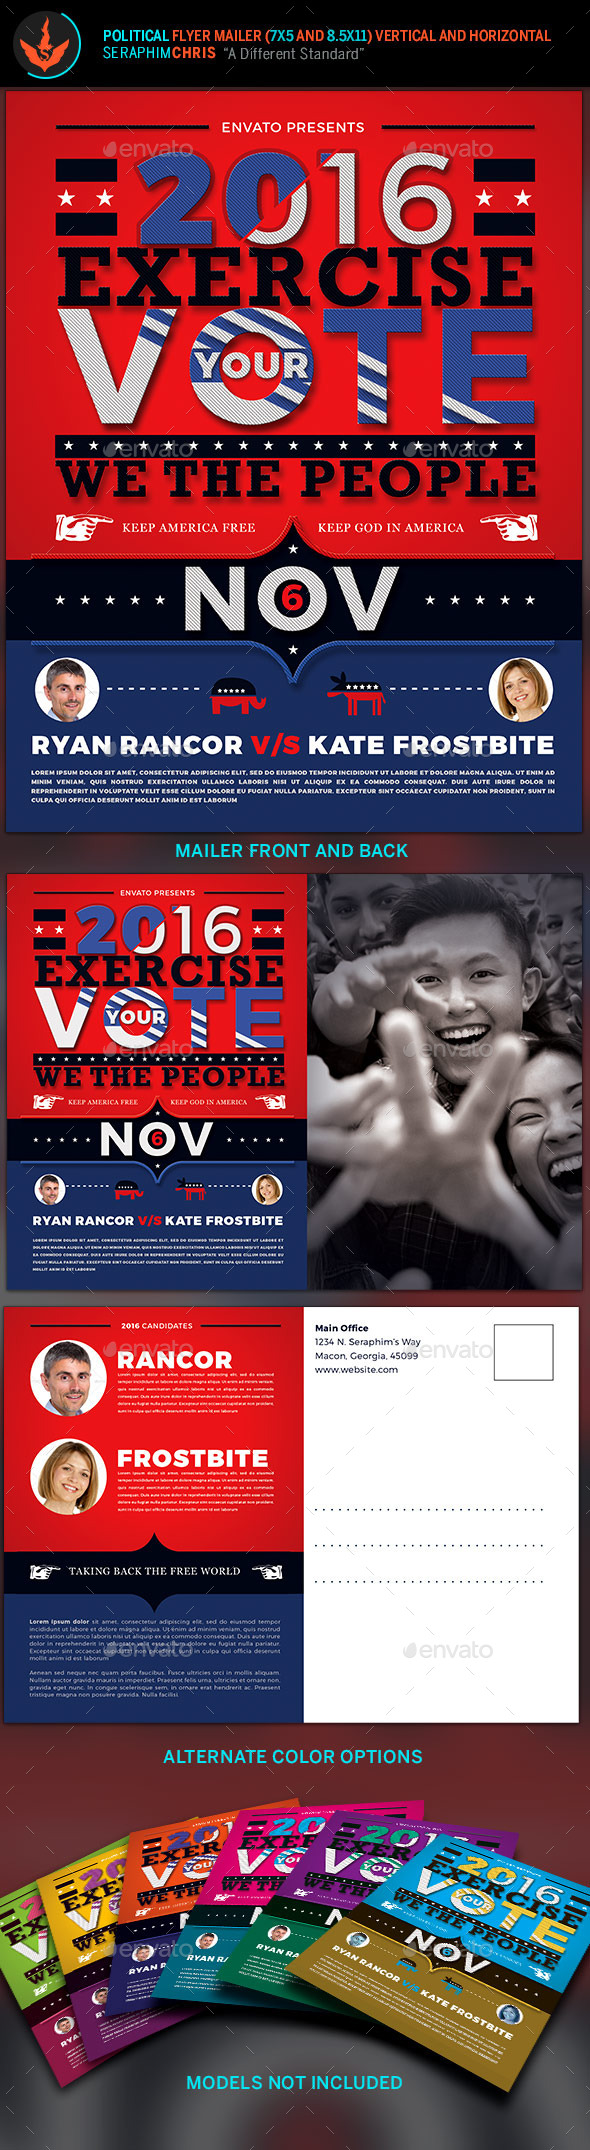 Exercise Your Vote Political Flyer & Mailer Template - Corporate Flyers